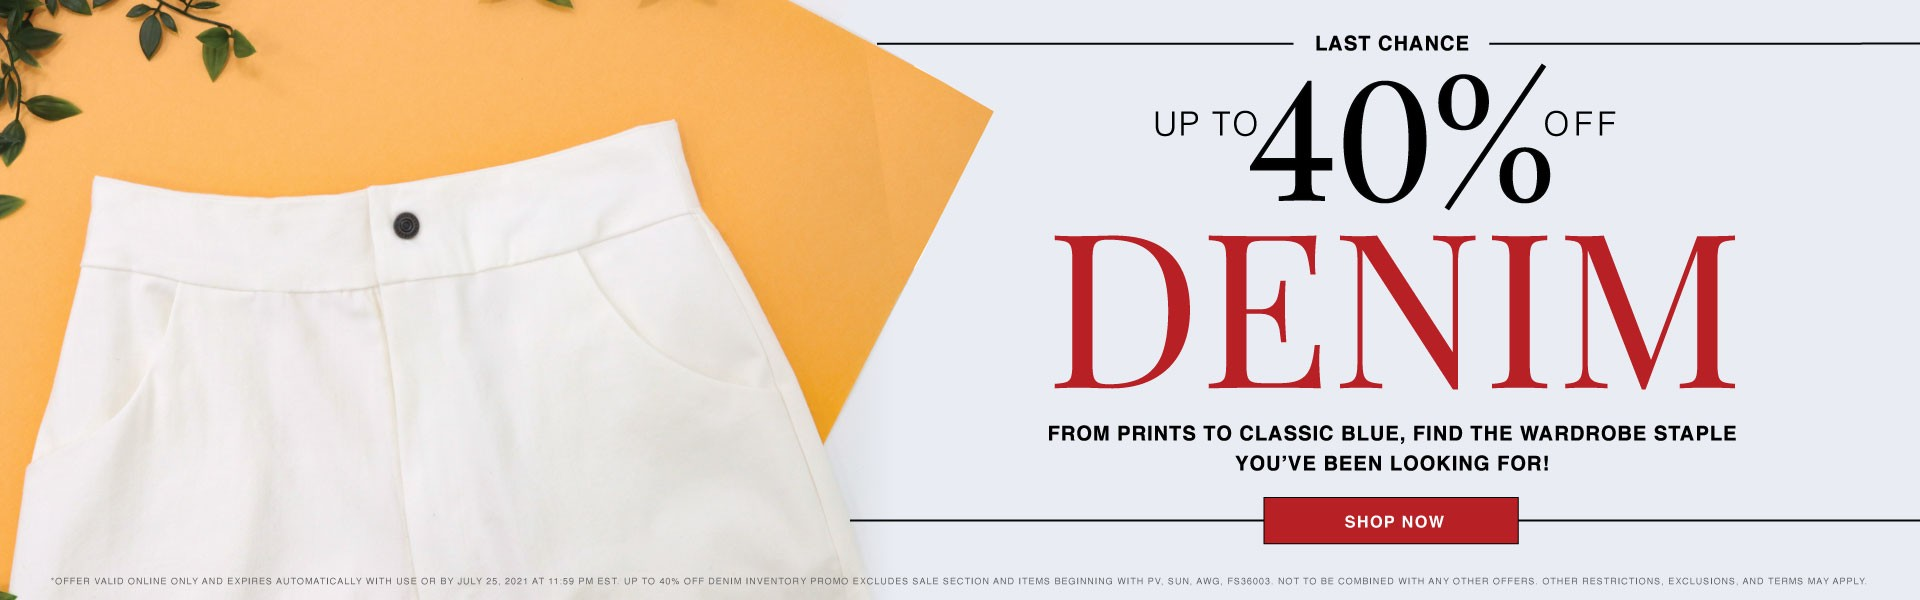 Up to 40% Off Denim Fabrics - Shop the Sale Now!